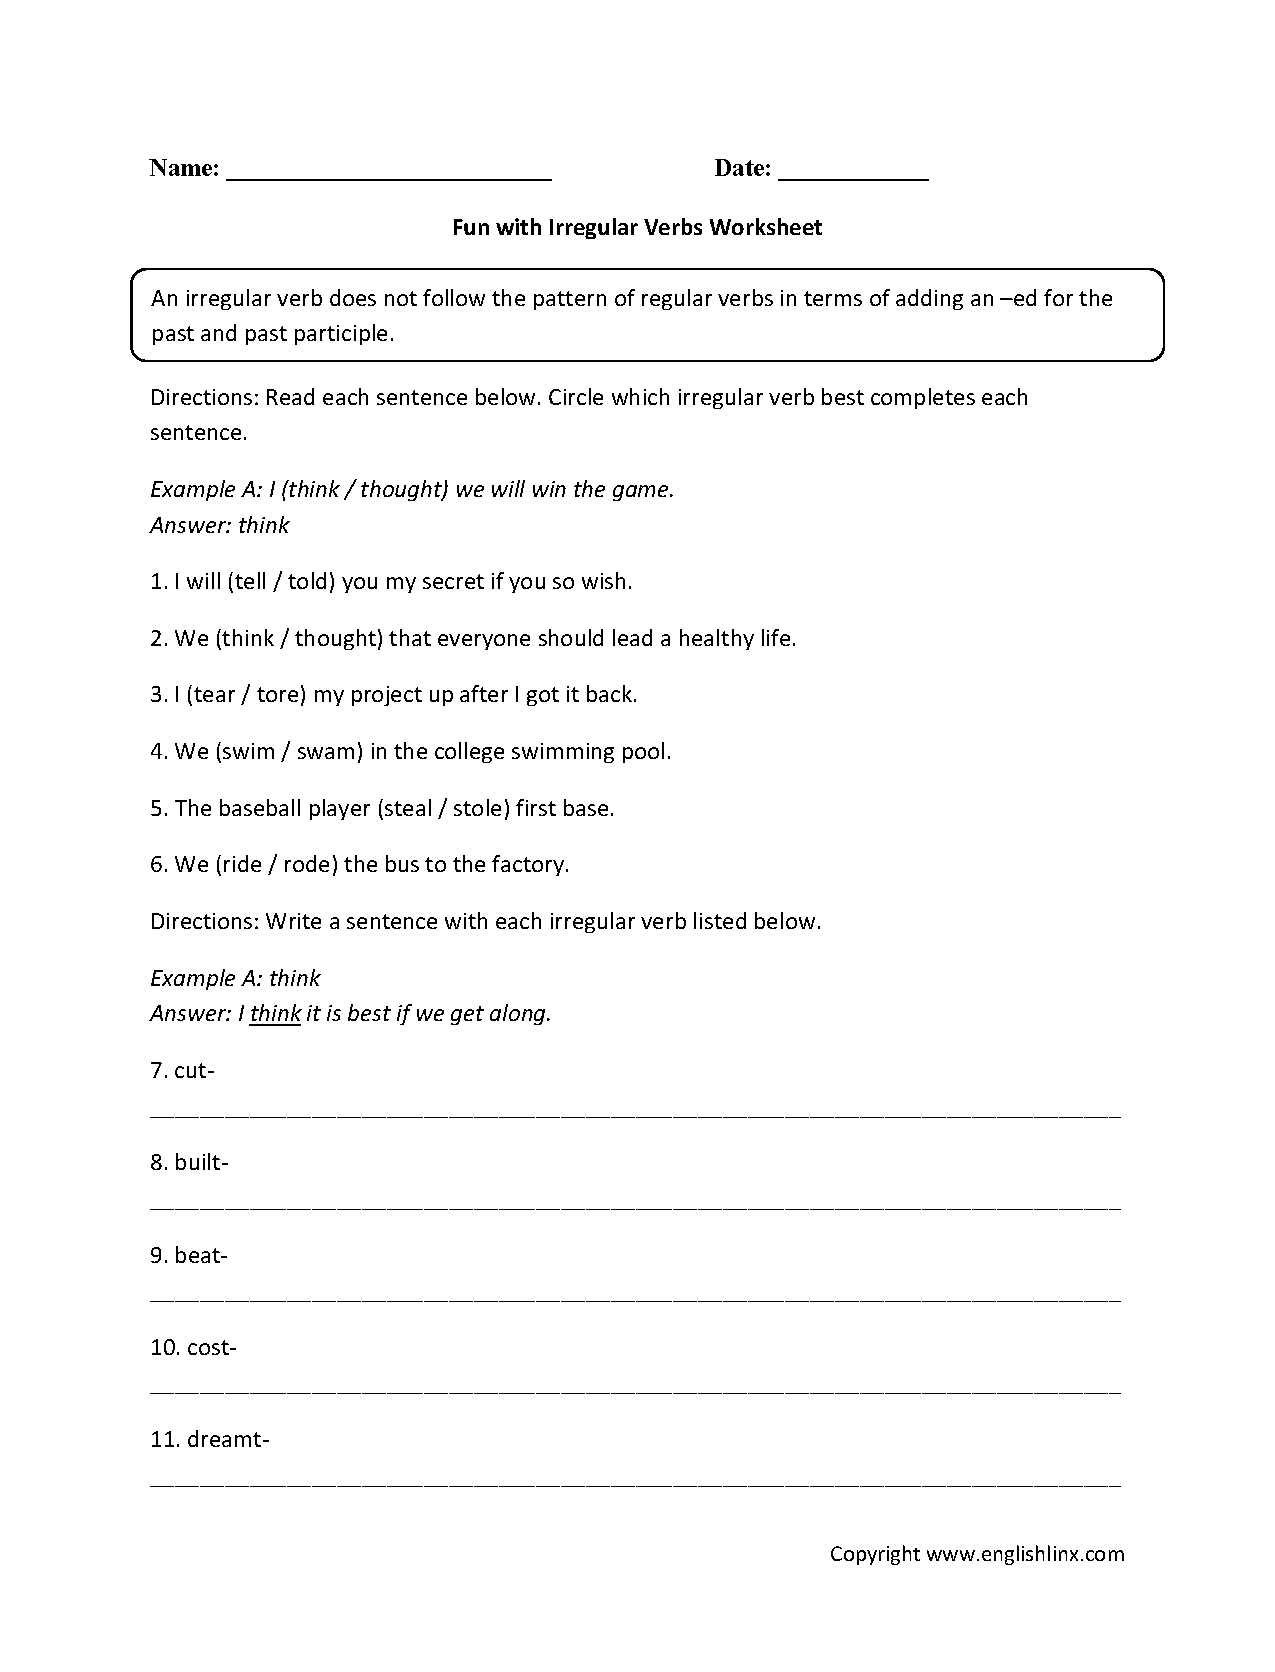 Free Worksheet Irregular Verbs Worksheet verbs worksheets irregular worksheets